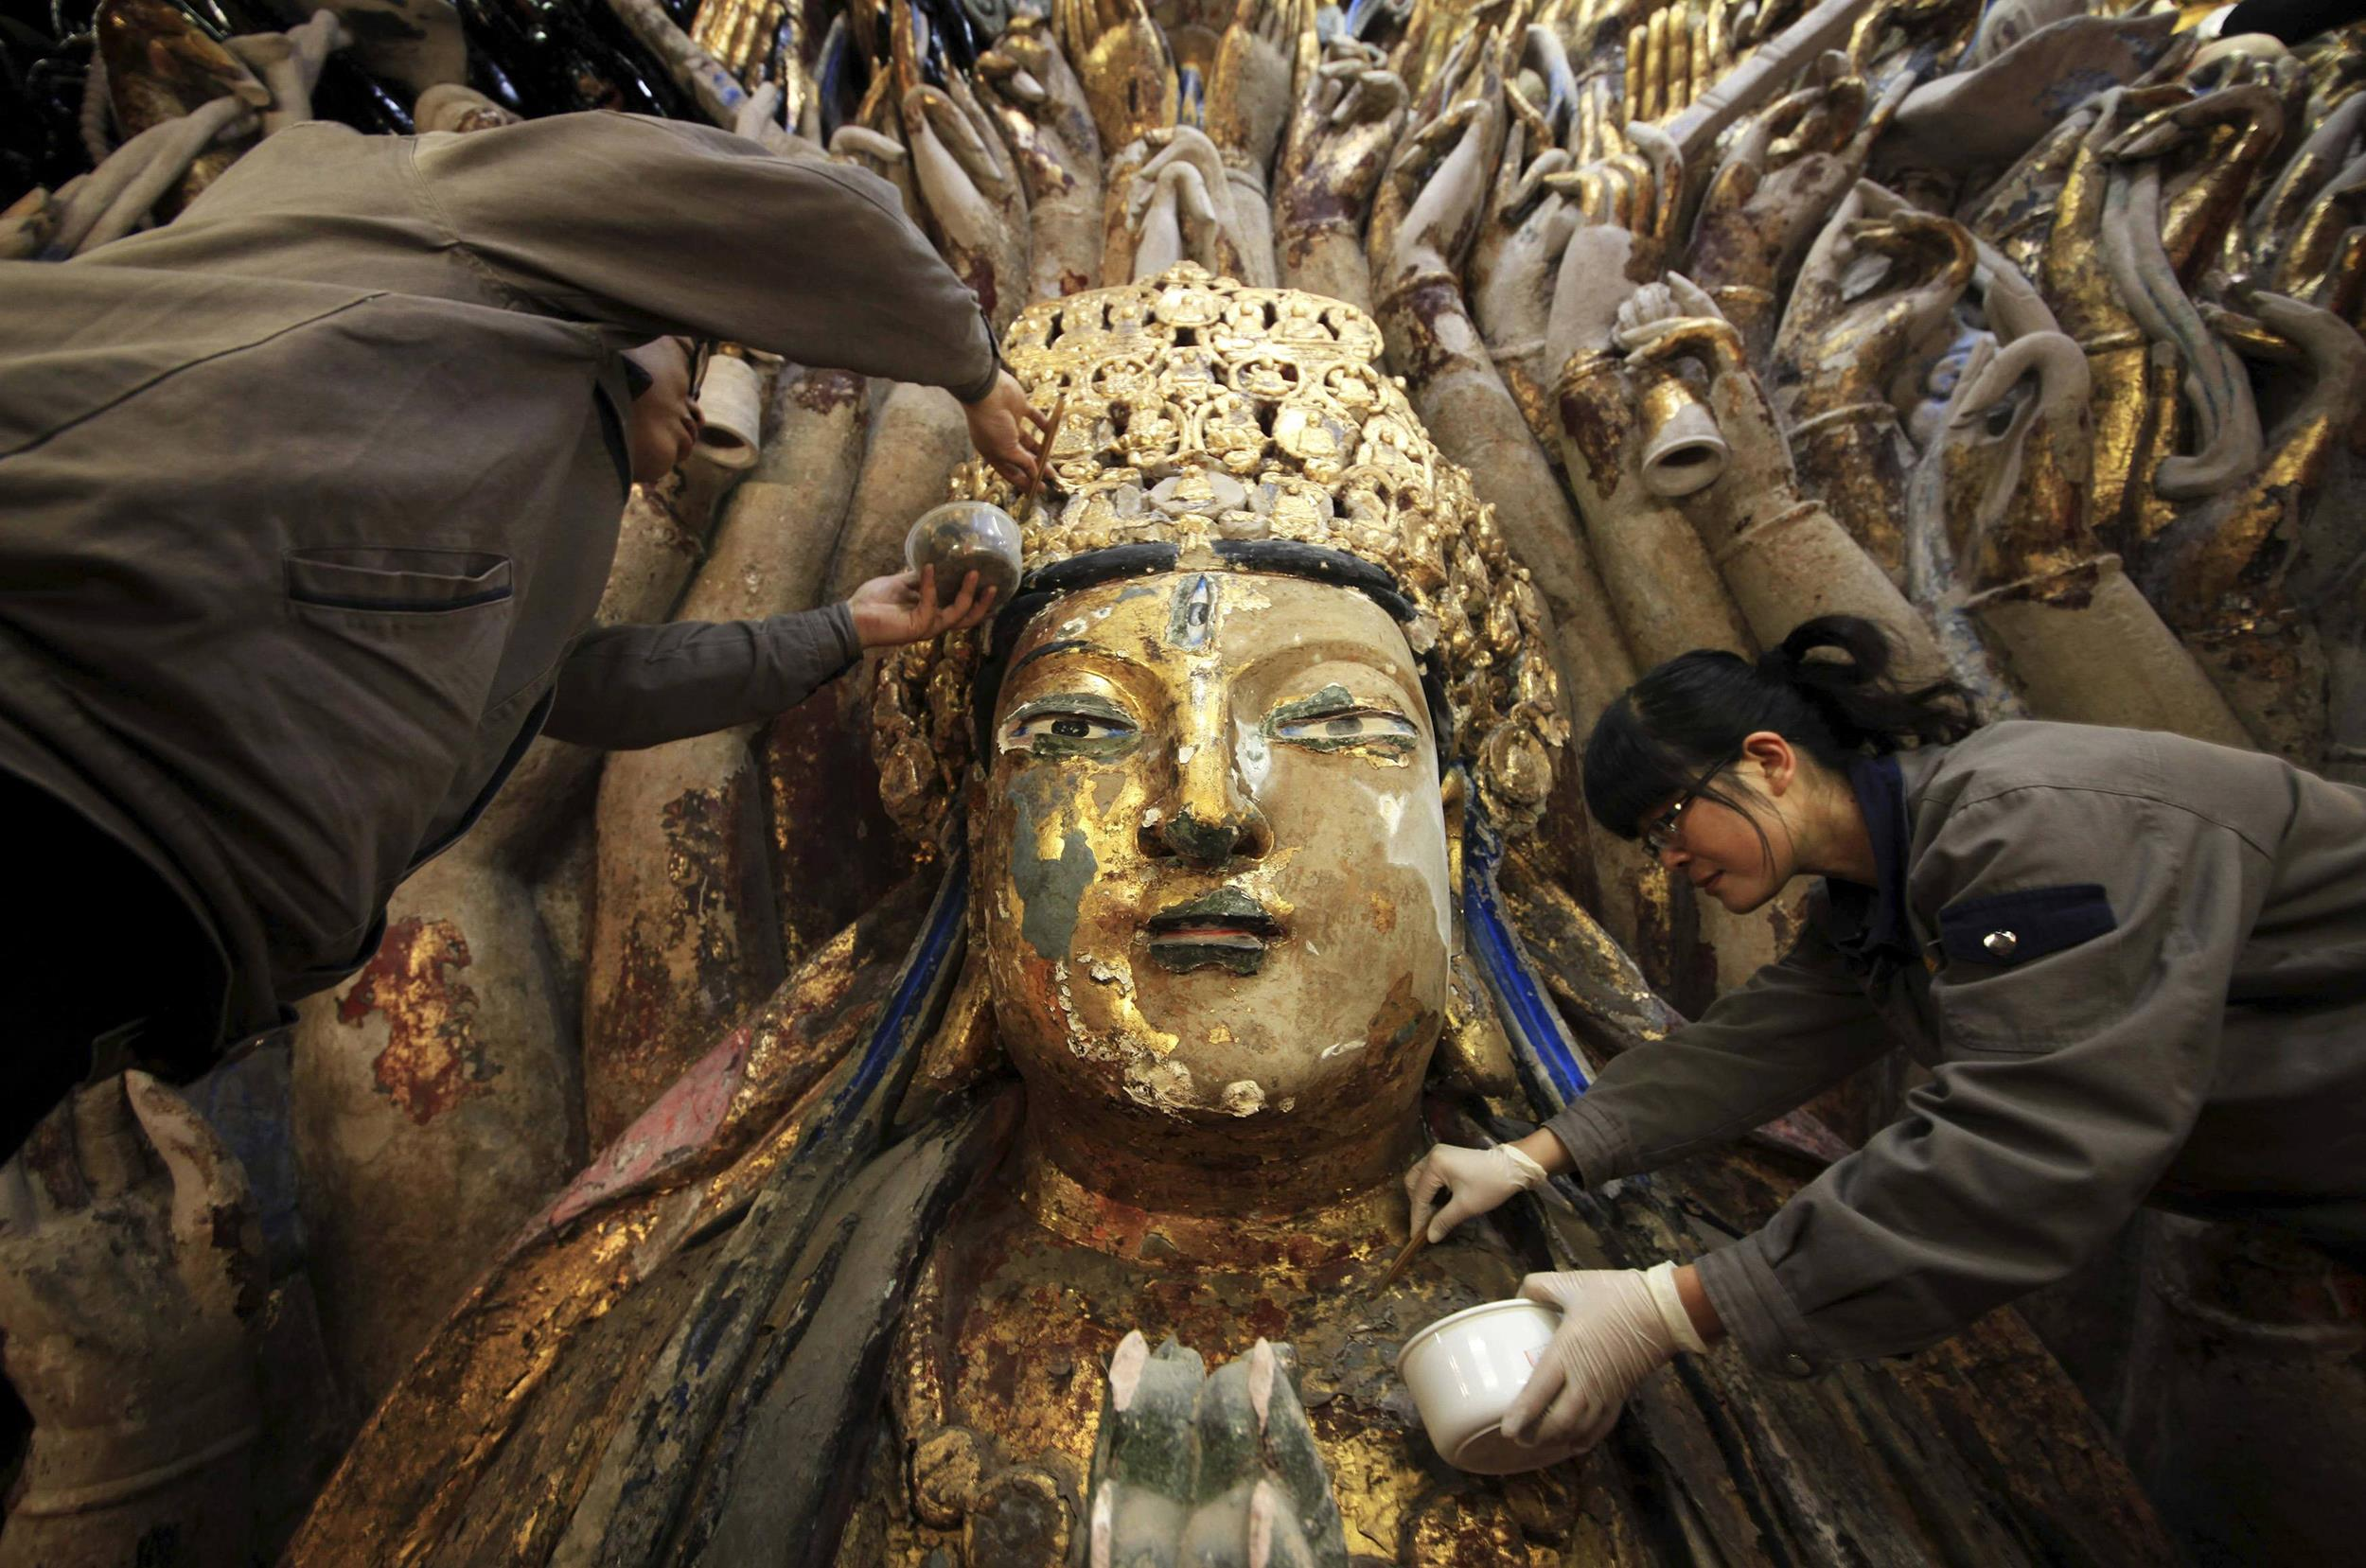 Image: Workers peel off loose gold foil as part of a restoration project for a Thousand-Hand Guanyin Buddhist statue in Chongqing